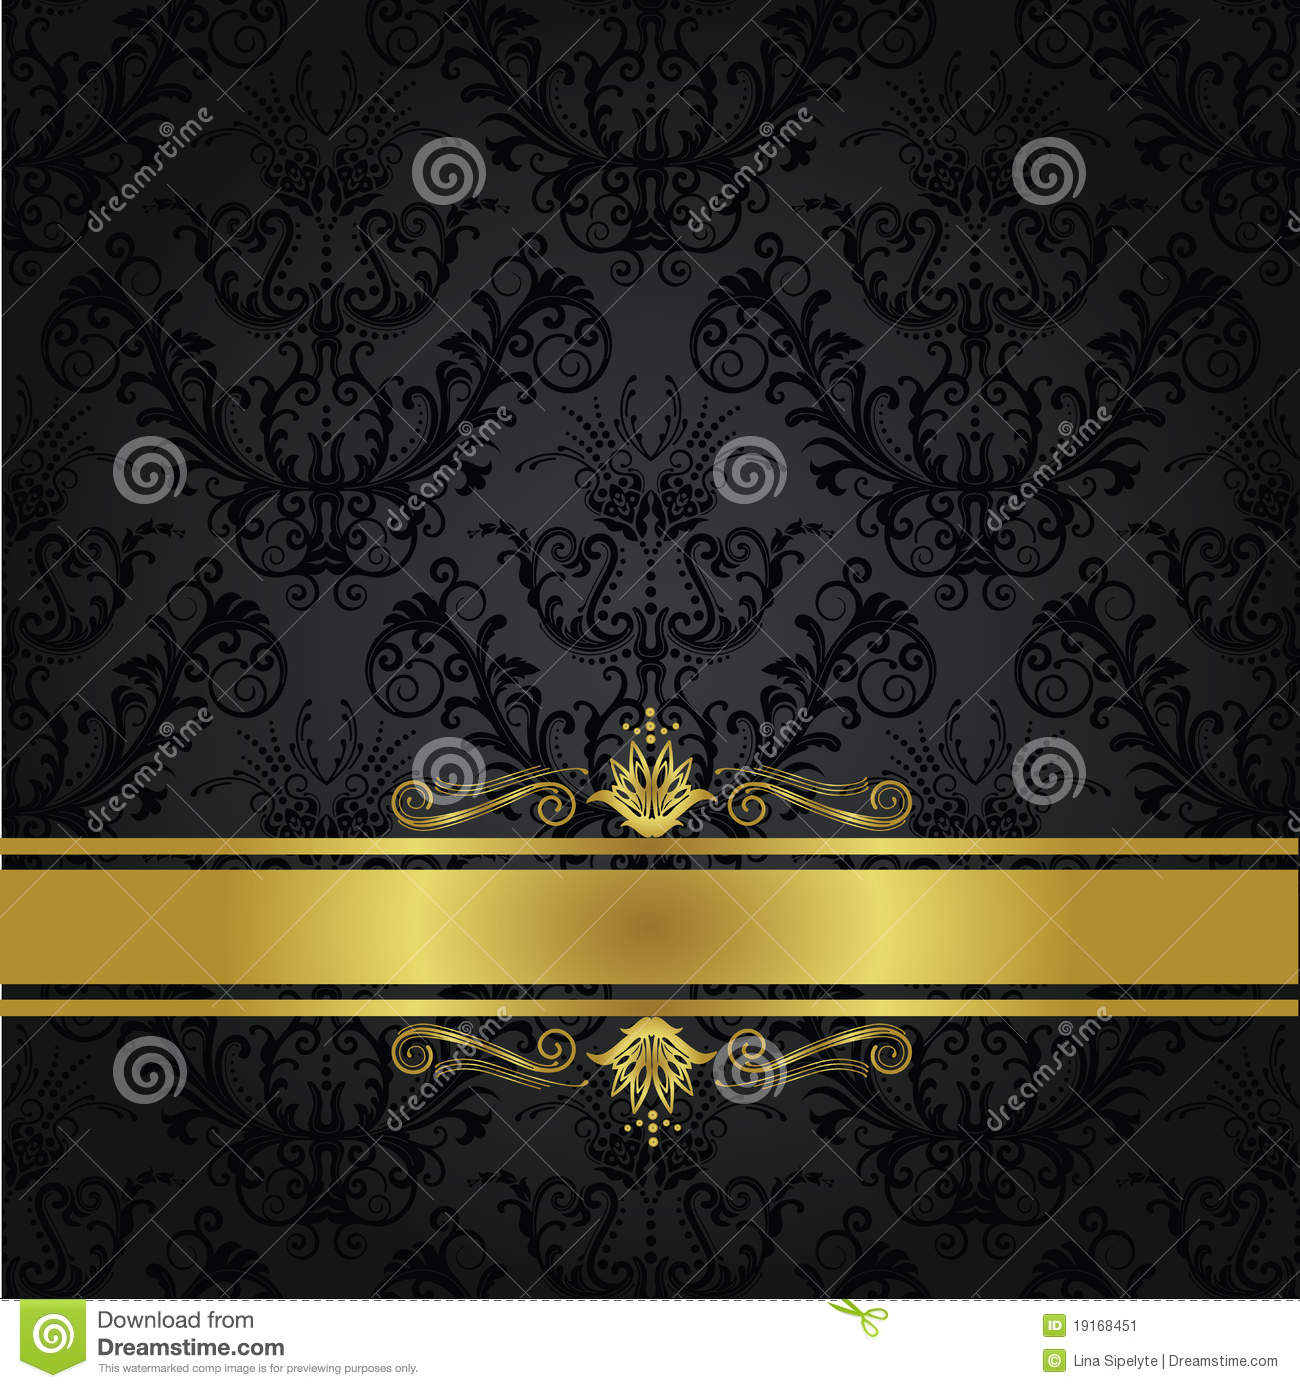 Book Cover Black And Gold : Luxury charcoal and gold book cover stock image